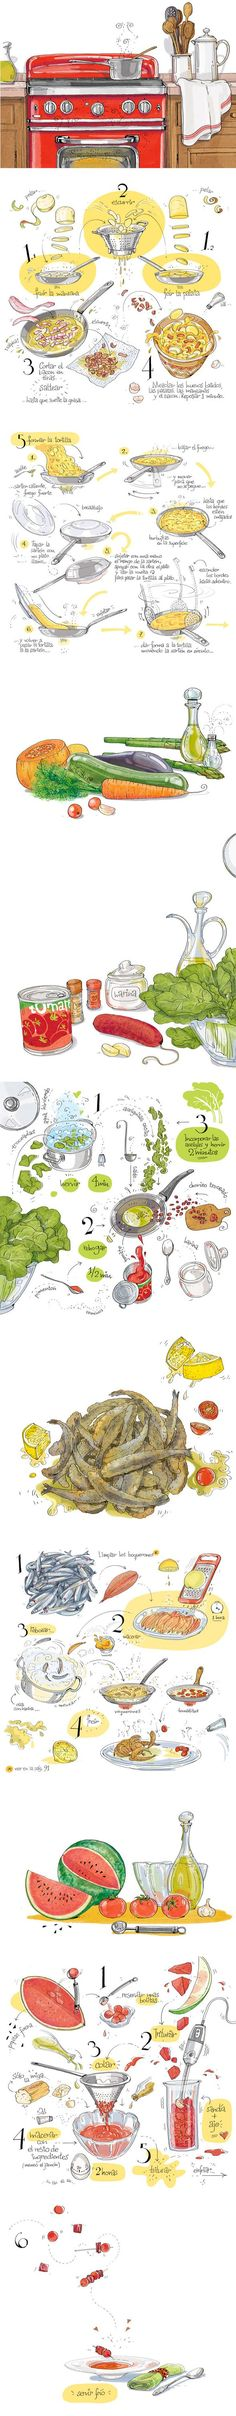 The Drawn Recipes Cookbook: